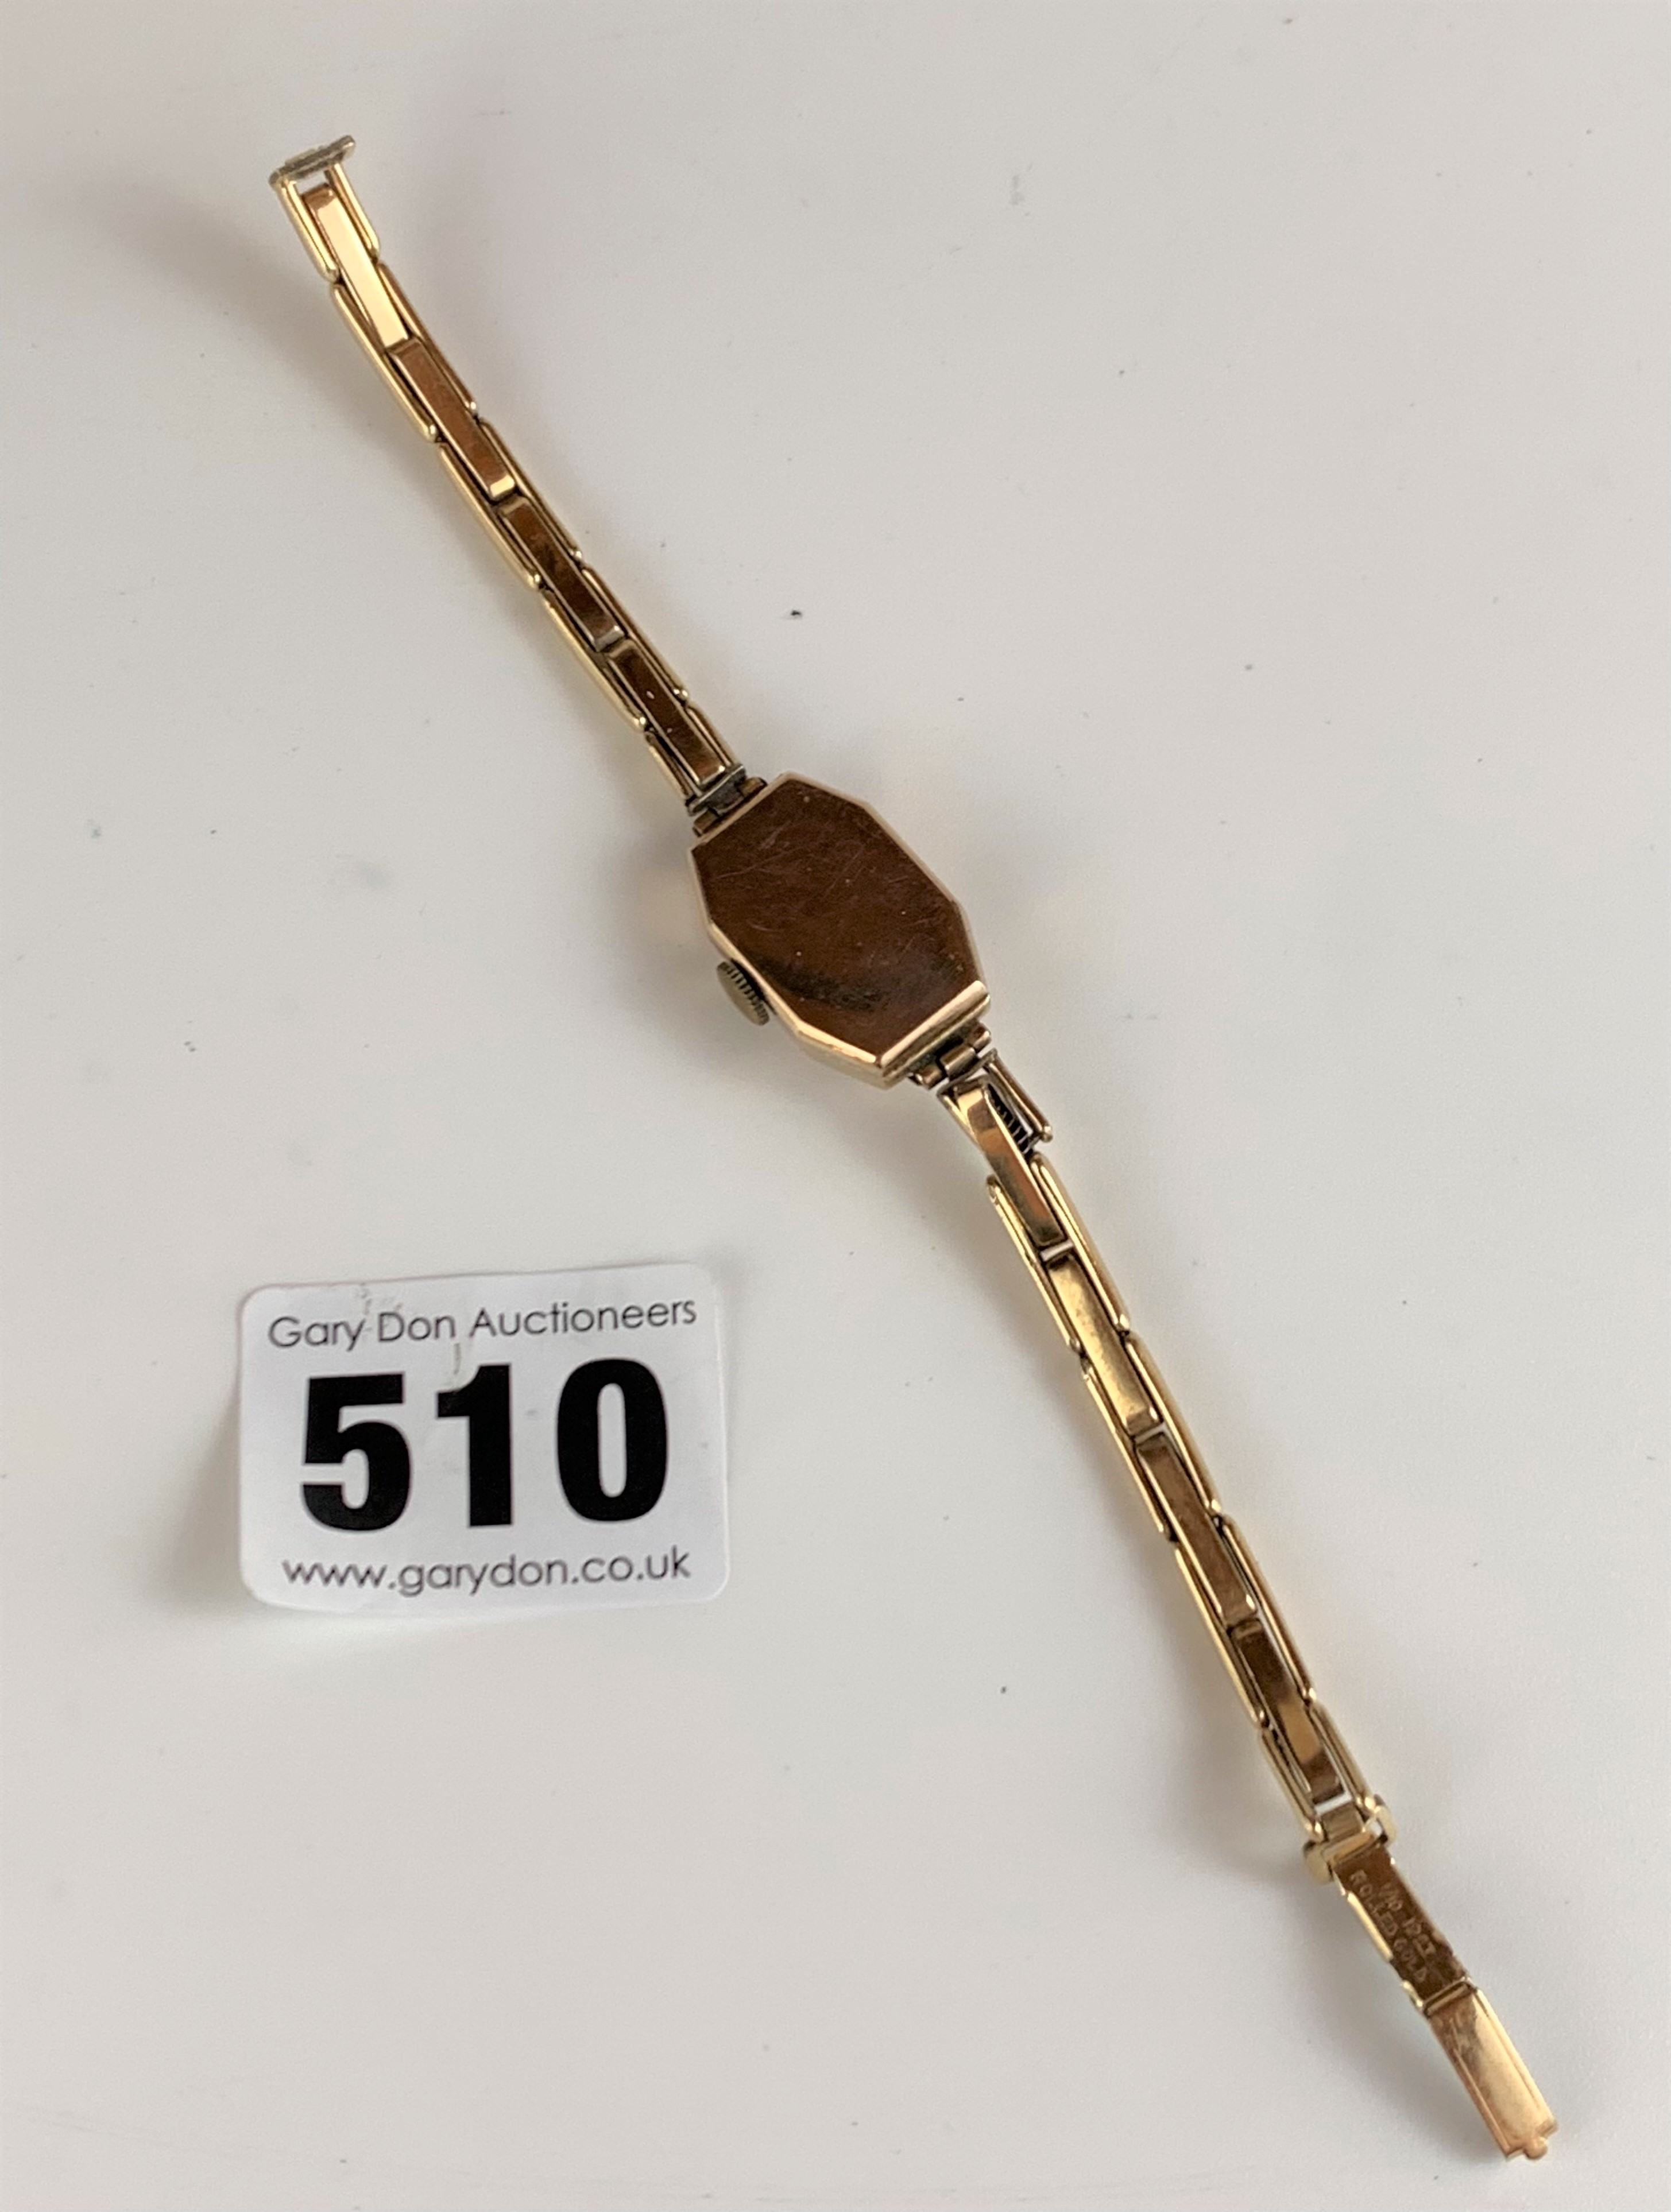 9k gold ladies watch with plated strap, total w: 12 gms, working - Image 5 of 5